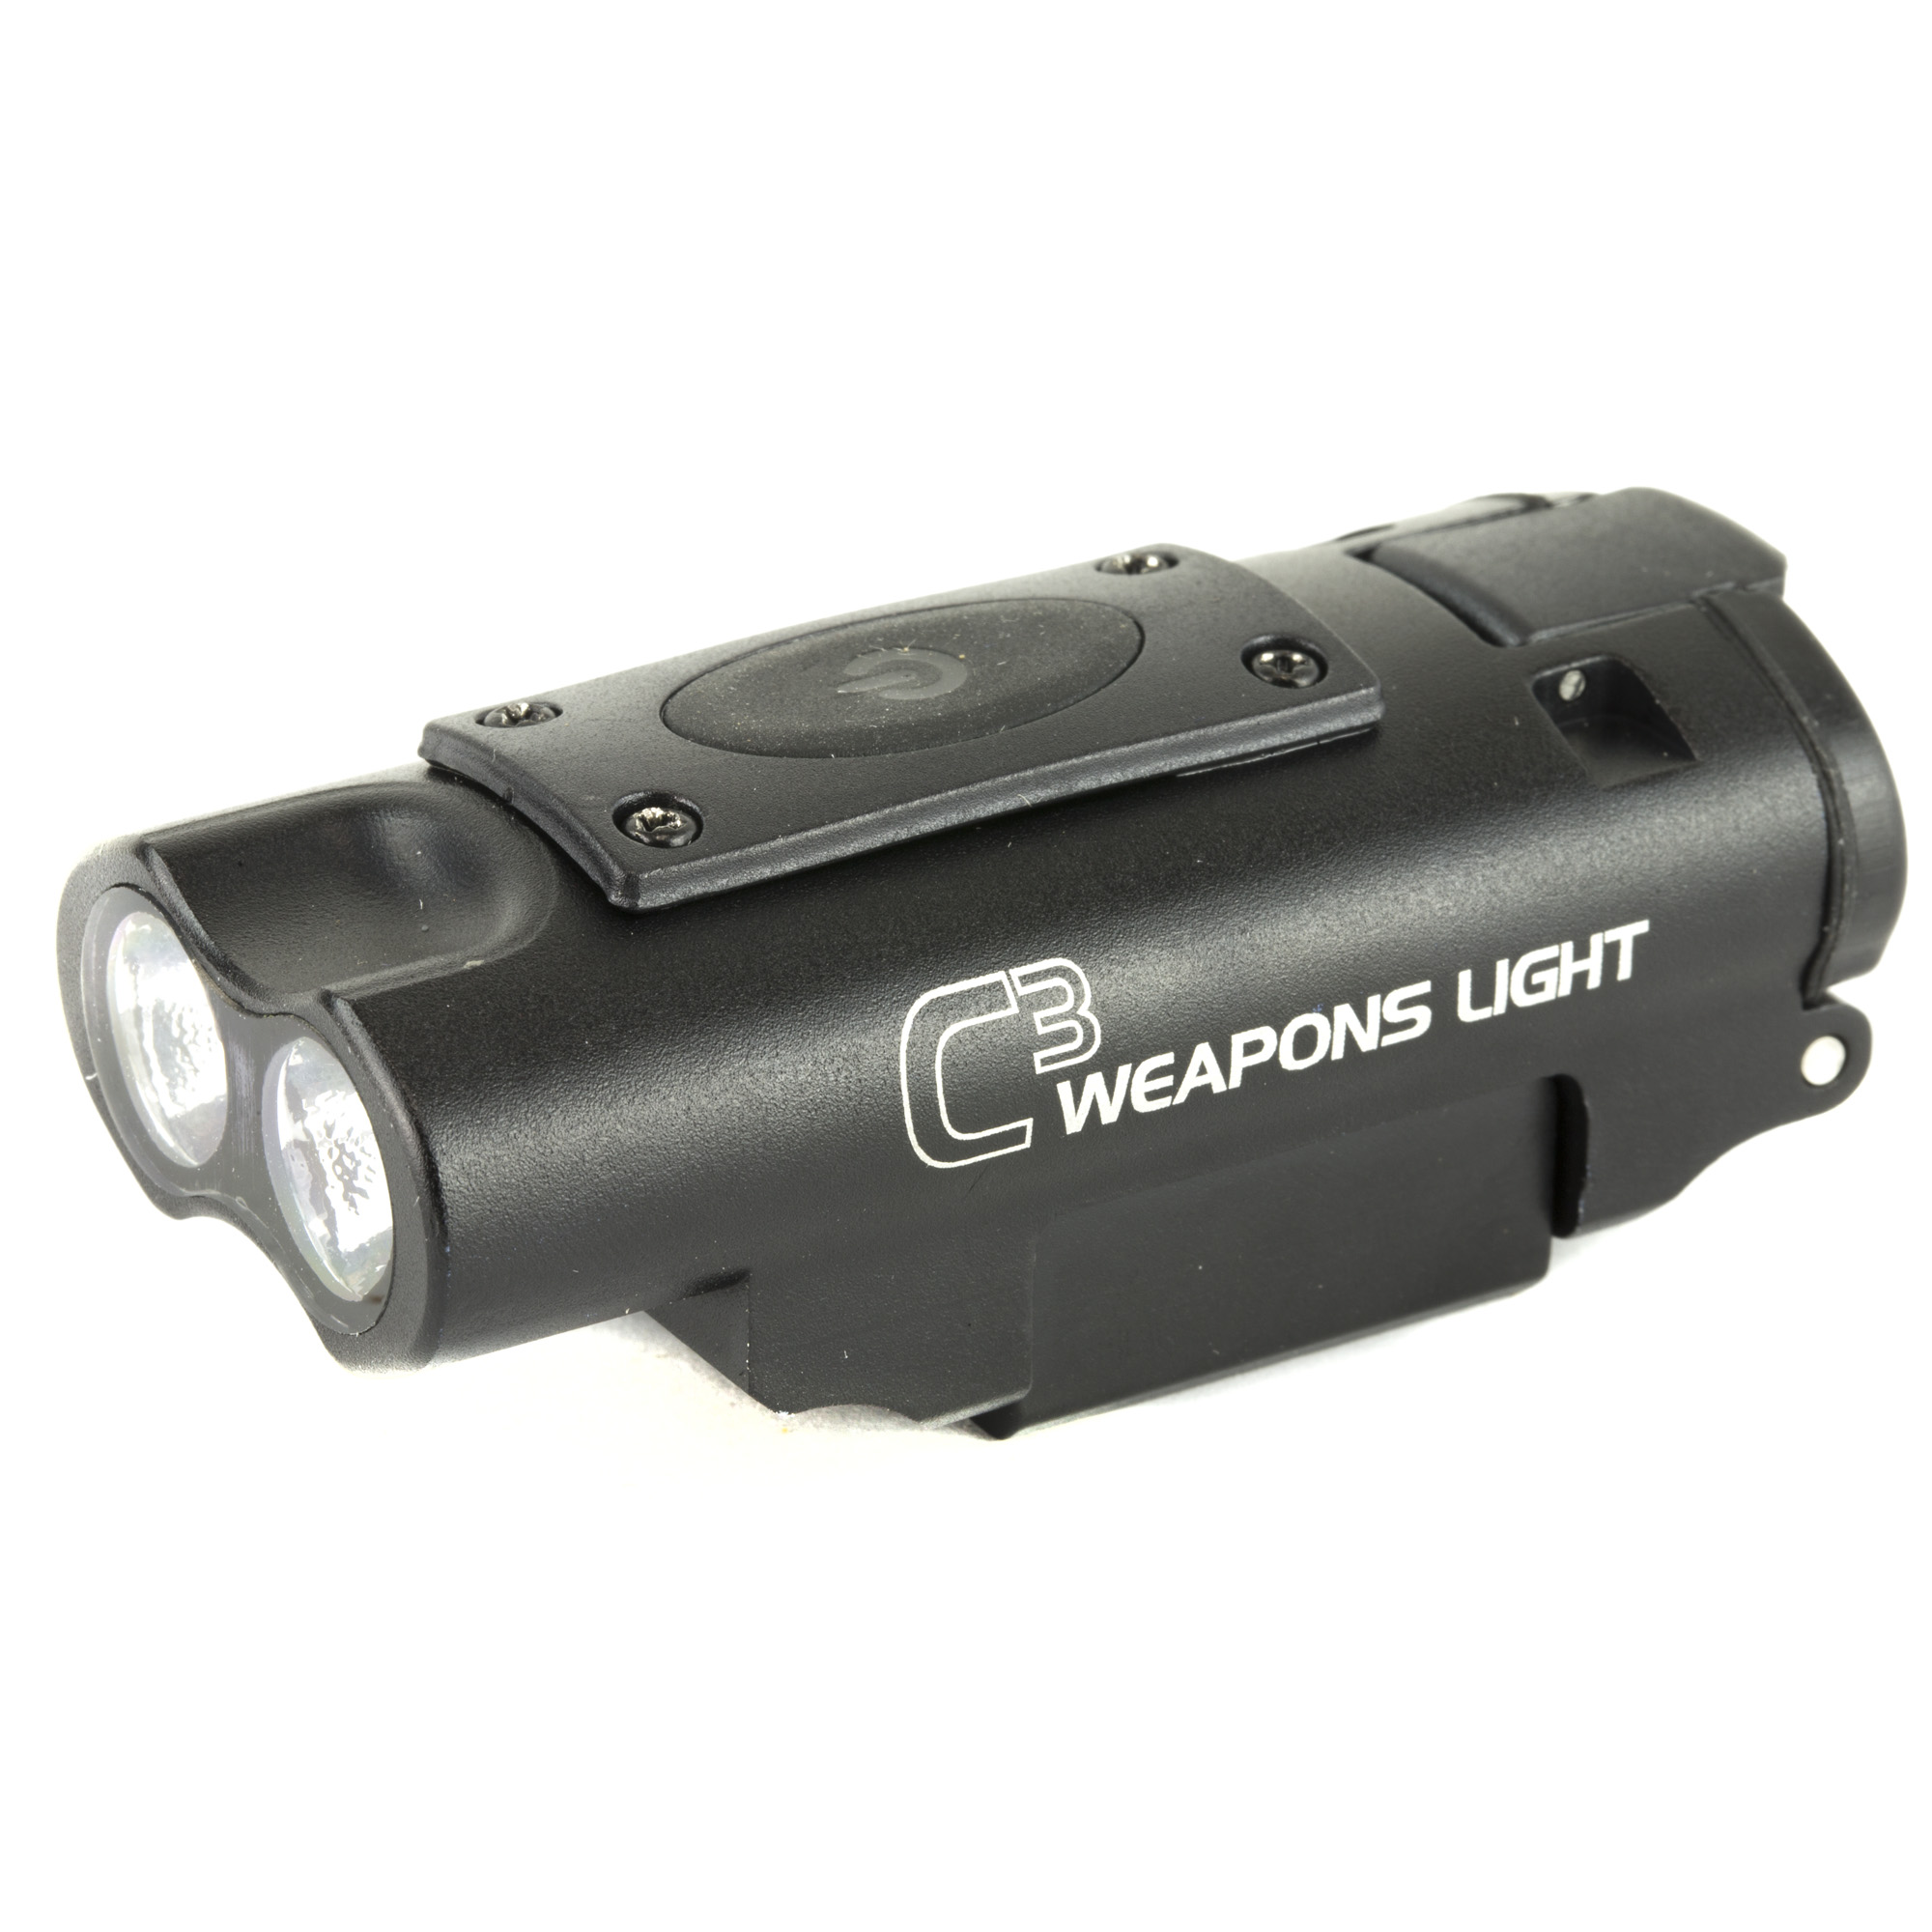 "The C3 Weapons light from LUCID Optics was born from a desire to push back against the darkness and manage things that may go bump in the night. LUCID overbuilt this little unit in a 6061 aluminum housing"" making it waterproof and shockproof up to .458SOCOM"" because we know how gentle our customers treat their gear. This super durable and shockingly powerful torch at 300 LUMENS is guaranteed to shed light on the situation"" so you can make a good decision on threat management. Specifically designed from the ground up"" for use on a carbine"" under the consult of those who hunt bad guys for a living"" not by a suit in a high rise building. This low profile torch has a simple on off pressure switch function for hands free operation and a highly disorienting strobe with near seizure causing function"" with a simple press and hold of the switch. Powered by (3) AAA batteries that you can find nearly anywhere. Simple"" Durable and exceeding expectations"" with a run time of just over 3 hours of continual use. Considering the high value and super affordable price point"" not to mention the Lifetime Warranty"" this is truly a weapons light"" done right"